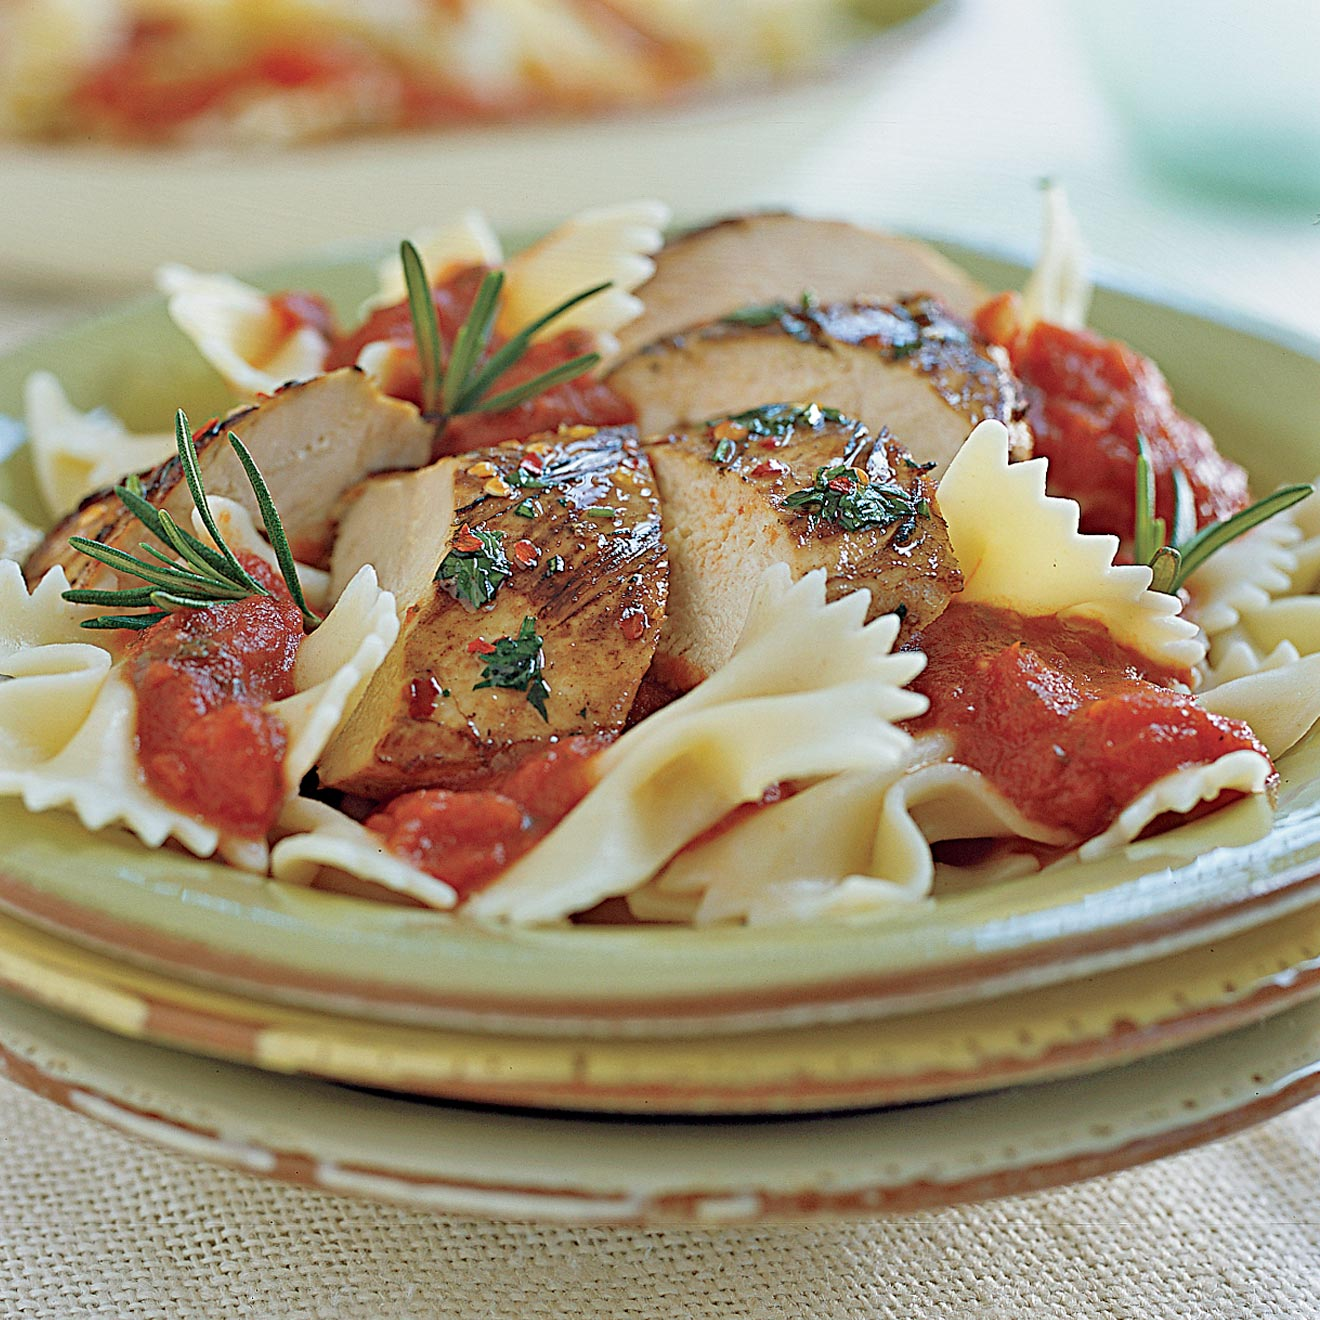 Farfalle with Herb-Marinated Grilled Chicken - Bertolli